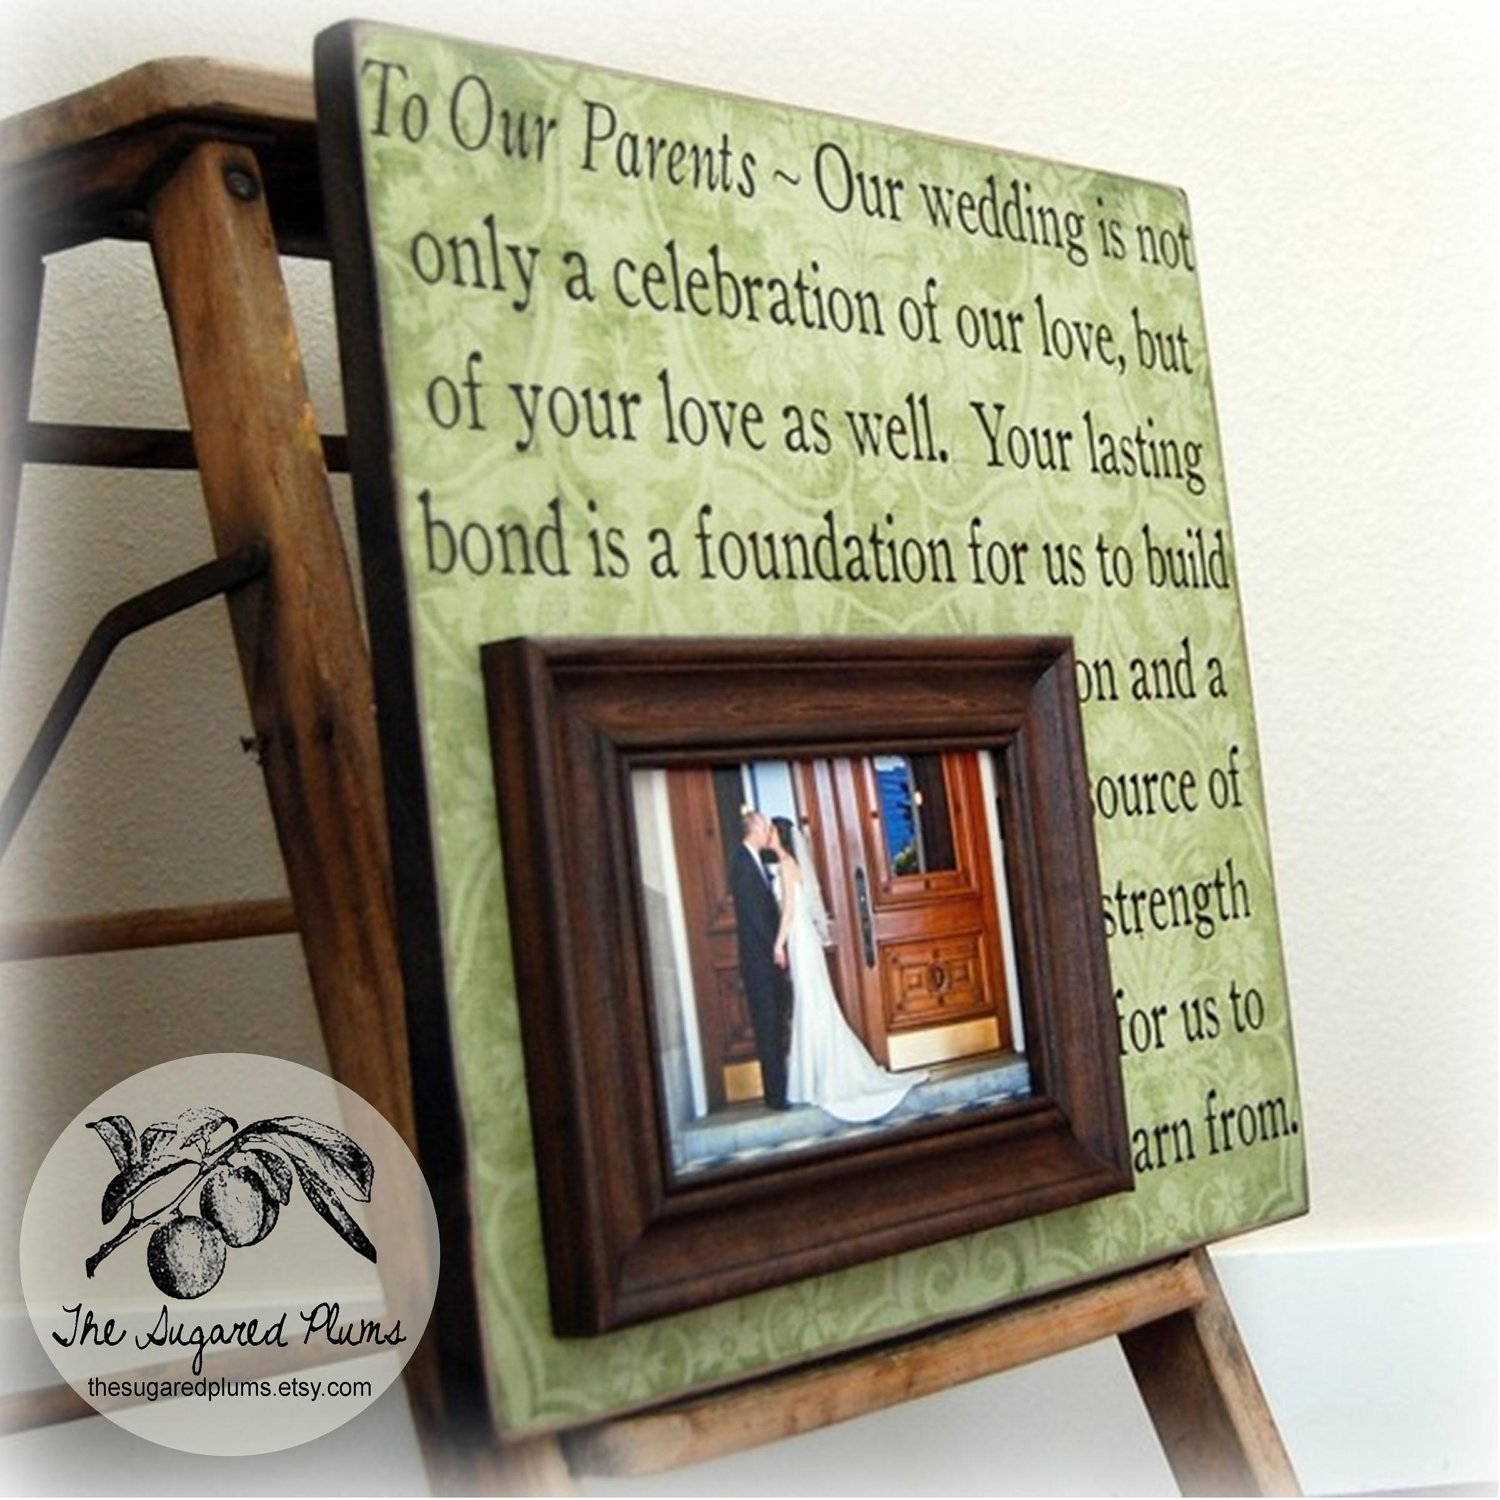 10 Lovely 25Th Anniversary Gift Ideas For Friends top 15 words memorable ideas for wedding anniversary gifts 8 2020